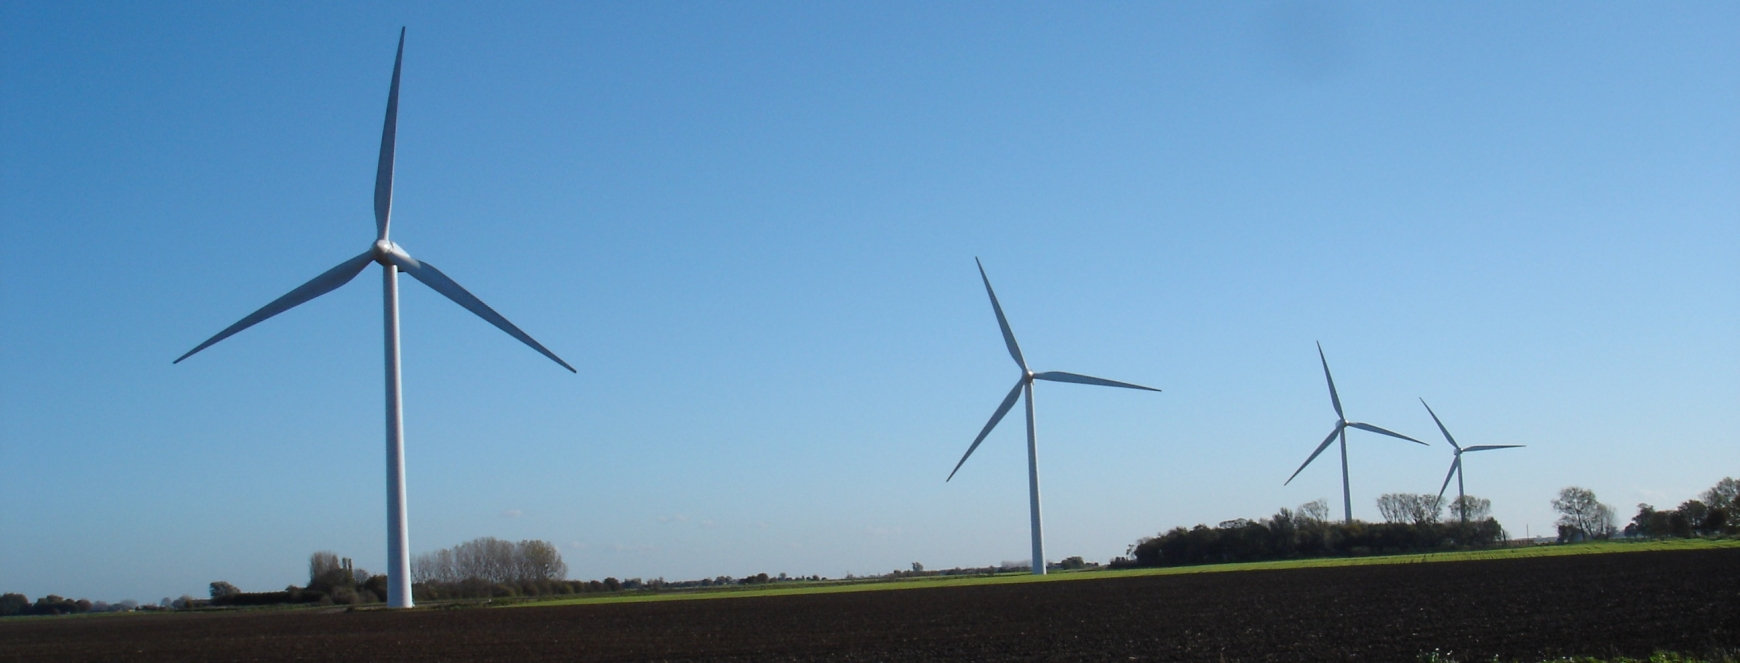 Wind turbines in a field with a cloudless blue sky behind